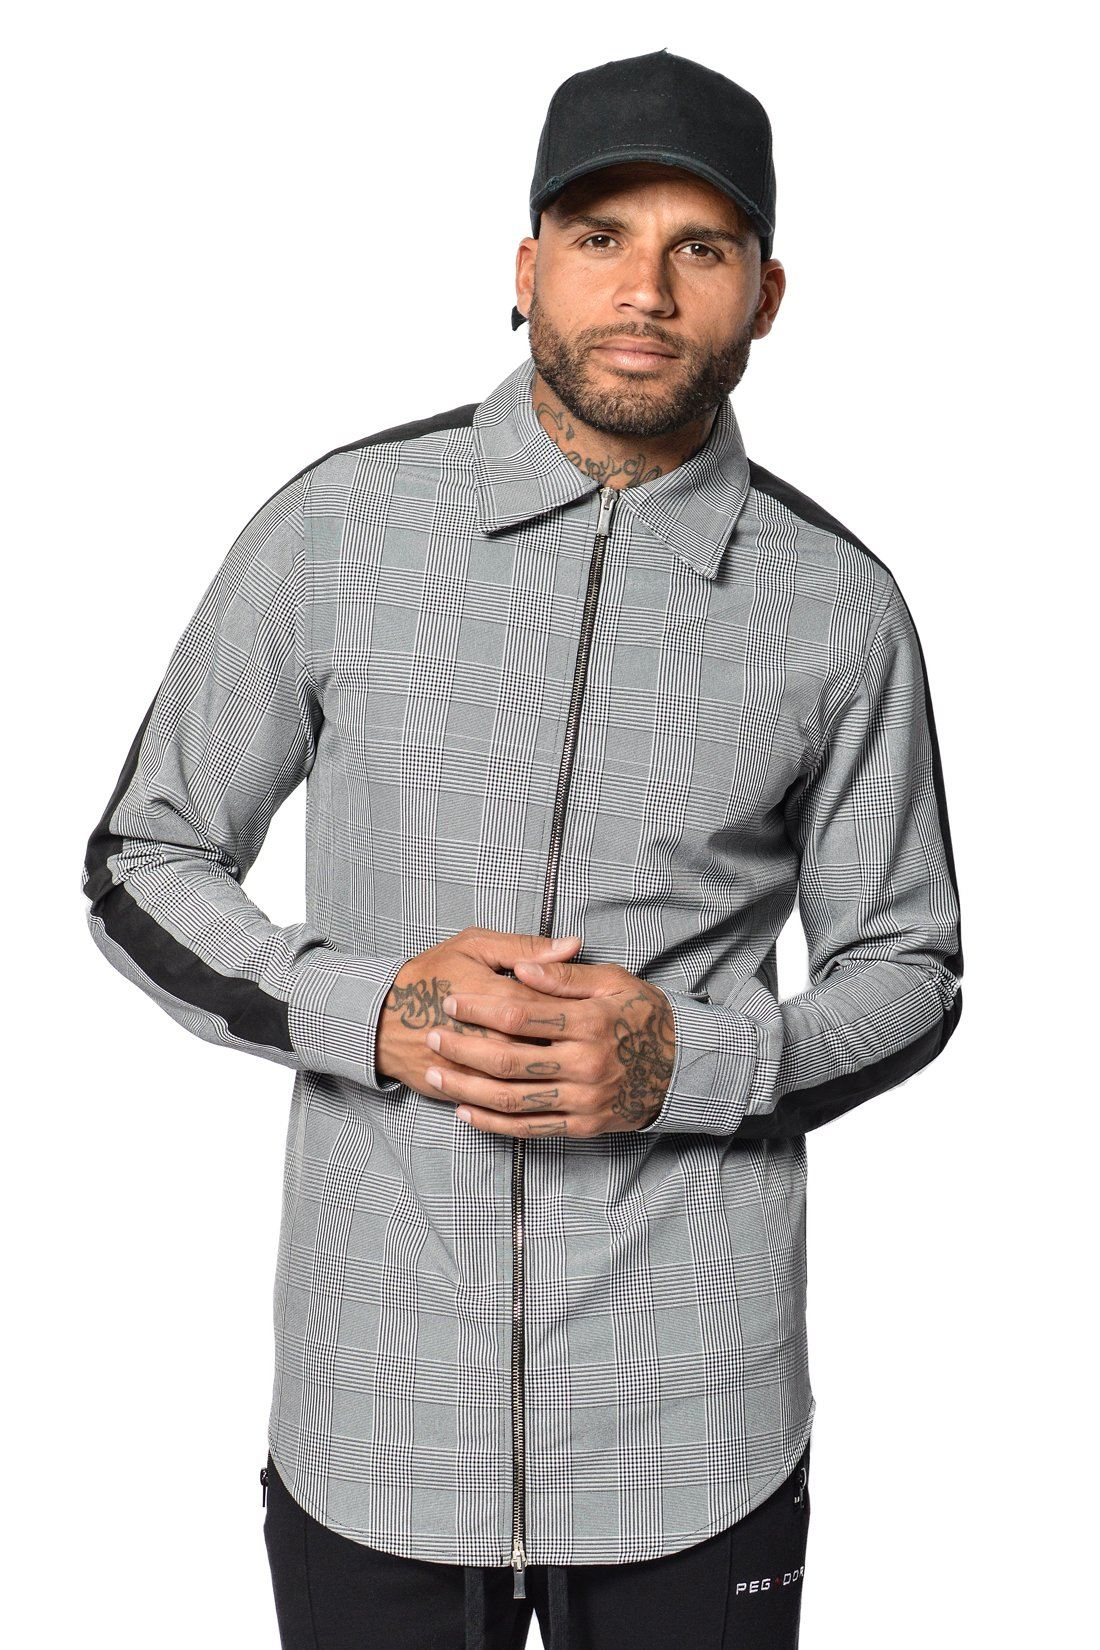 Fraco Shirt Black/Grey Checkered - PEGADOR - Dominate the Hype